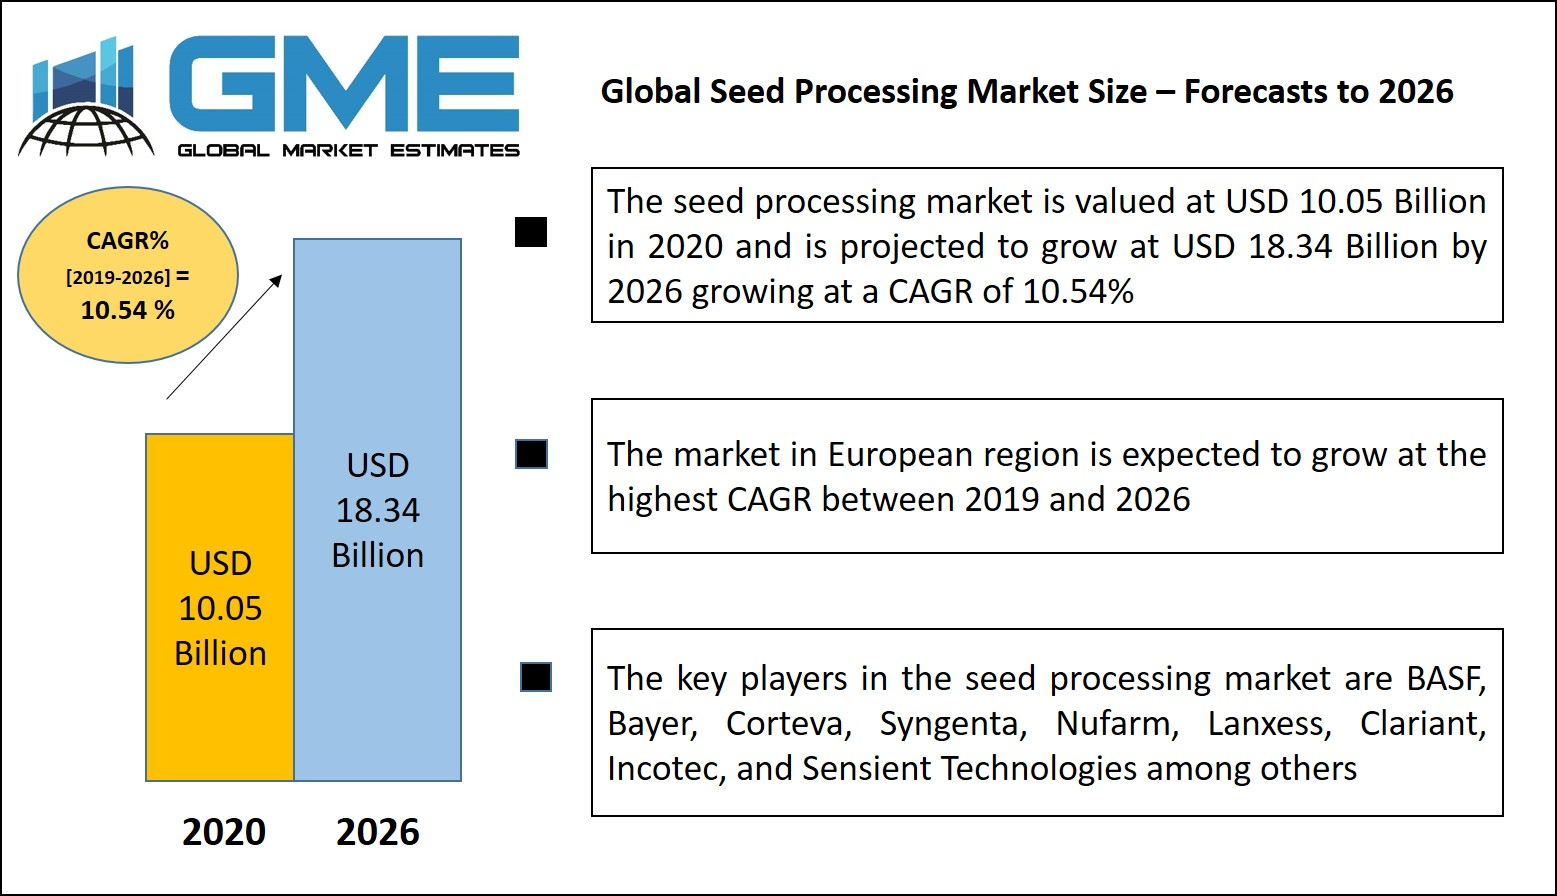 Global Seed Processing Market Size – Forecasts to 2026